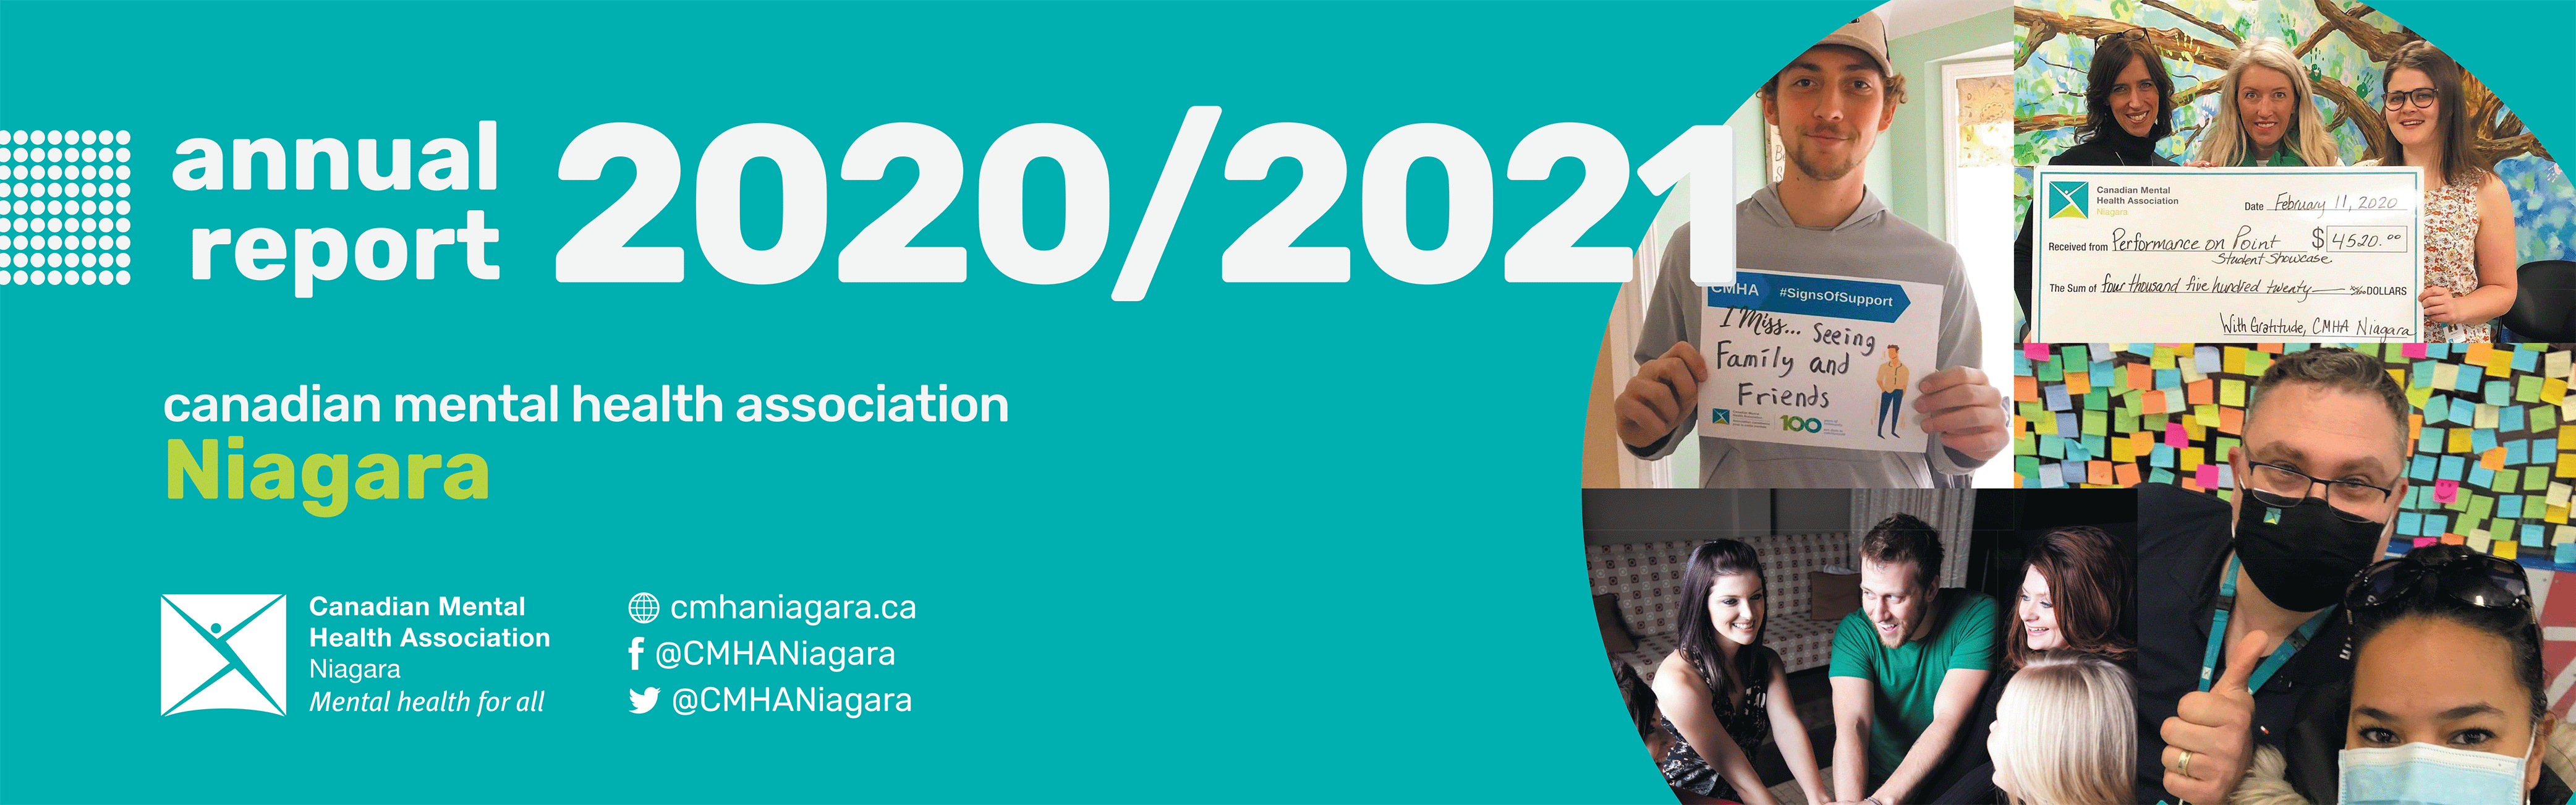 2020 2021 Annual Report banner graphic